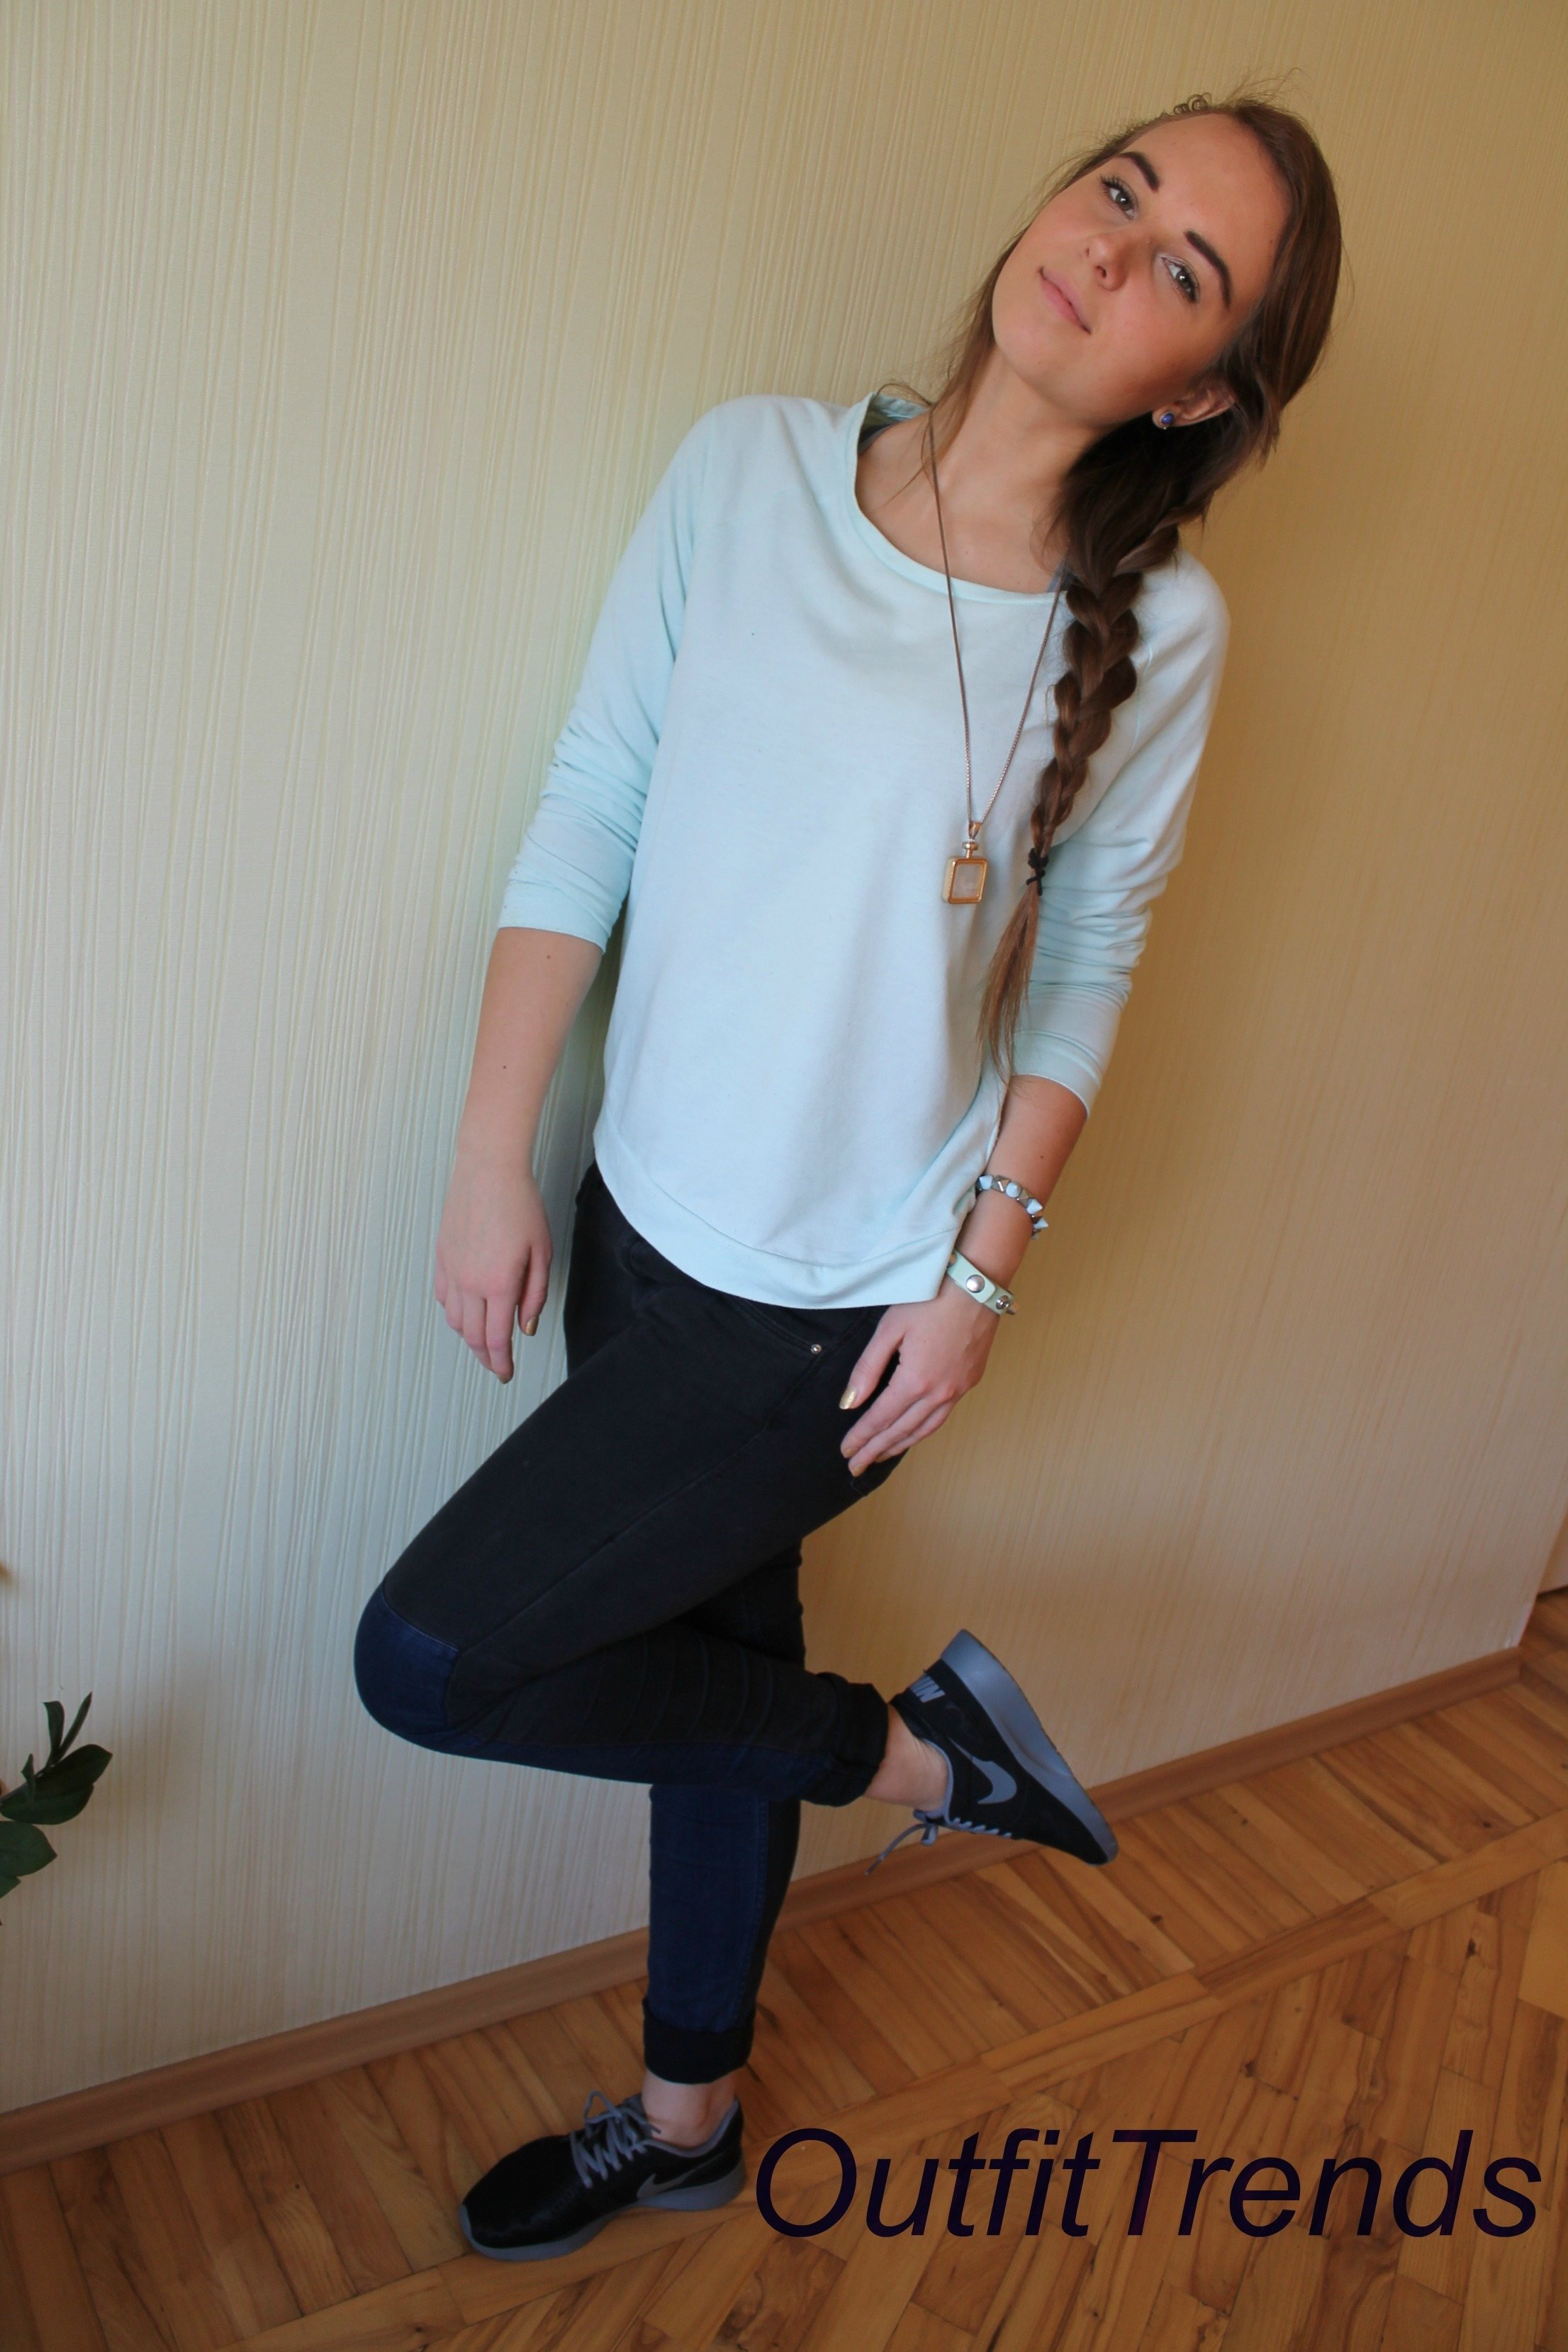 How to Look Cute in a Casual Outfit